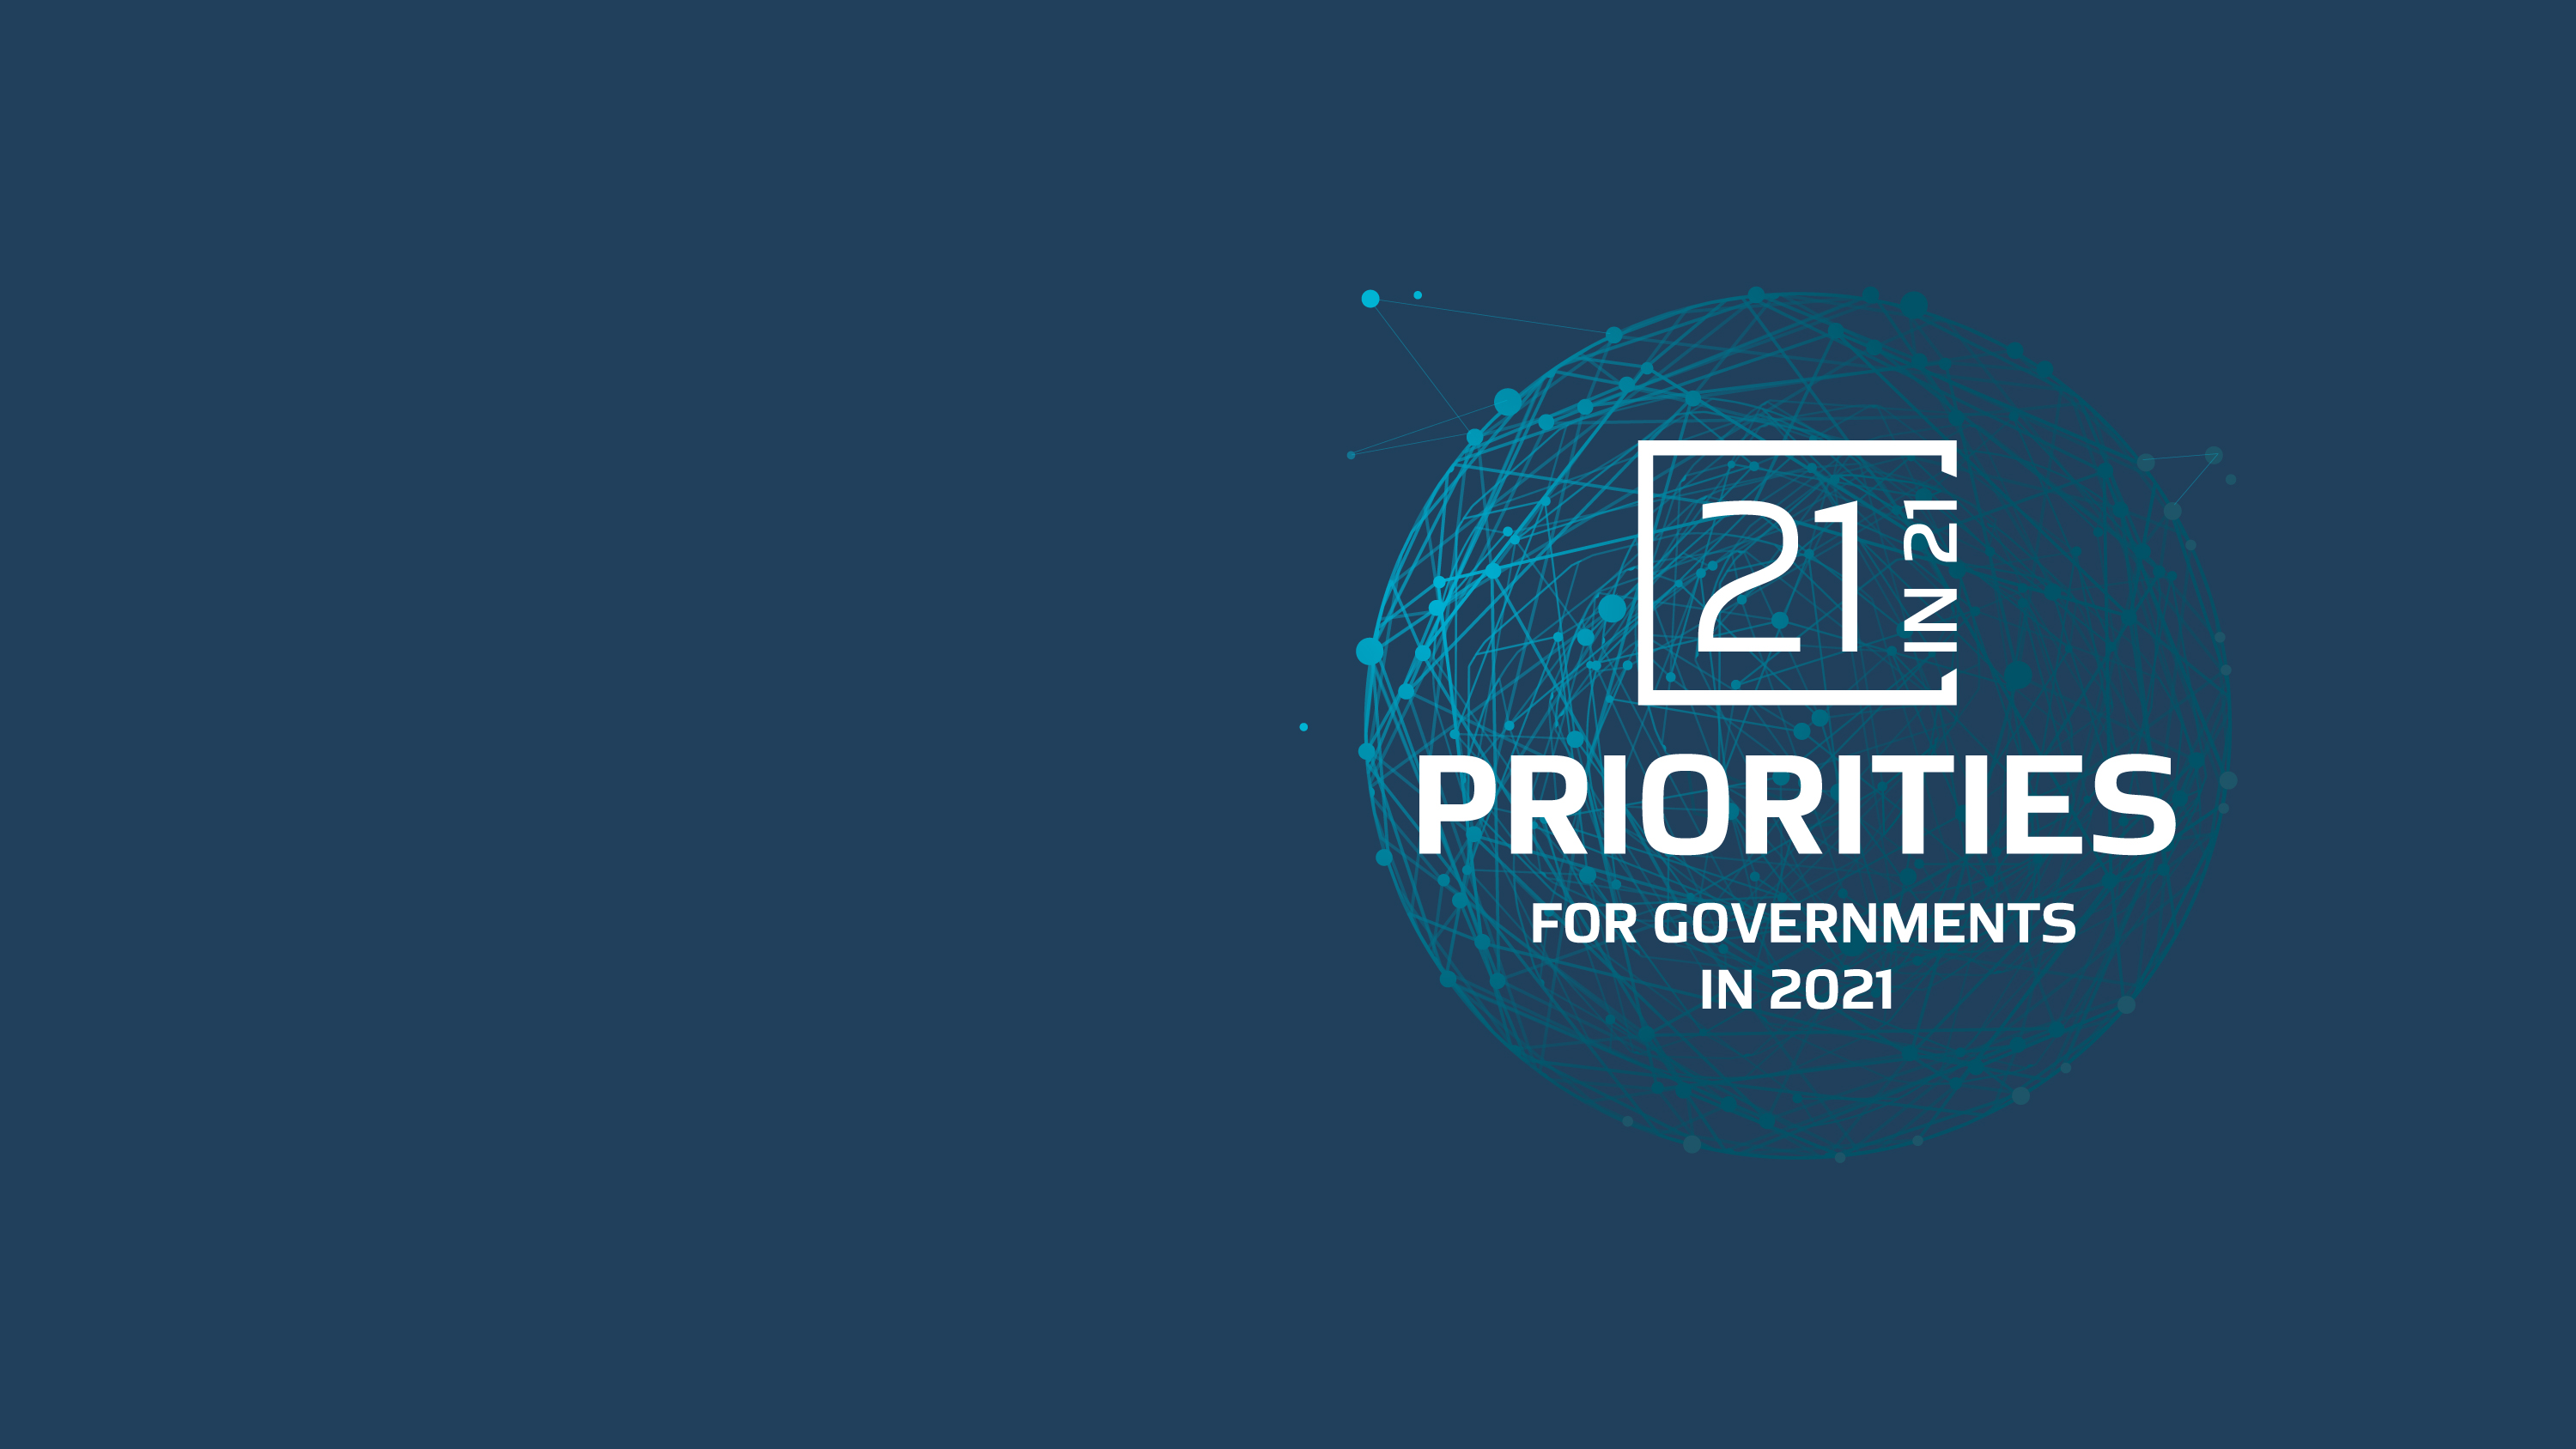 "21 Priorities for <br/>Governments in 2021<br/><a style='font-size:35px;background: #008CC2;' class=""mid-blue-big-button""  href=""/observer/reports/2021/detail/21-priorities-for-governments-in-2021"" >View Full Report</a>"